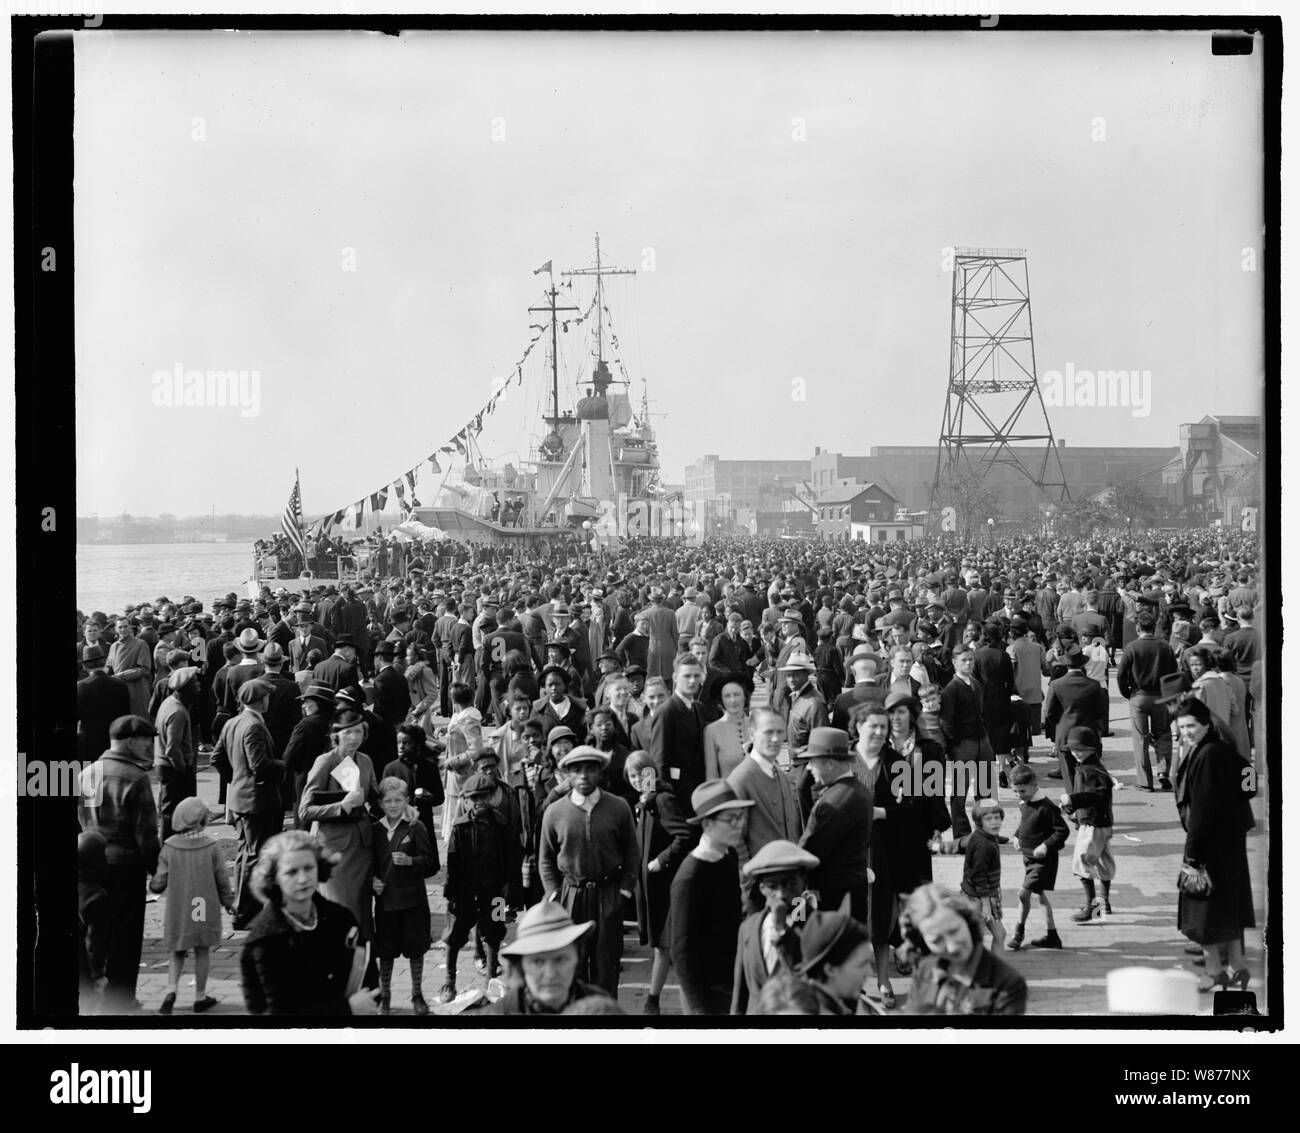 'Navy Day' Washington, D.C., Oct. 27. General view of the thousands that visited the Washington Navy Yard and looked the workings of the Navy over, 10/27/38 Stock Photo